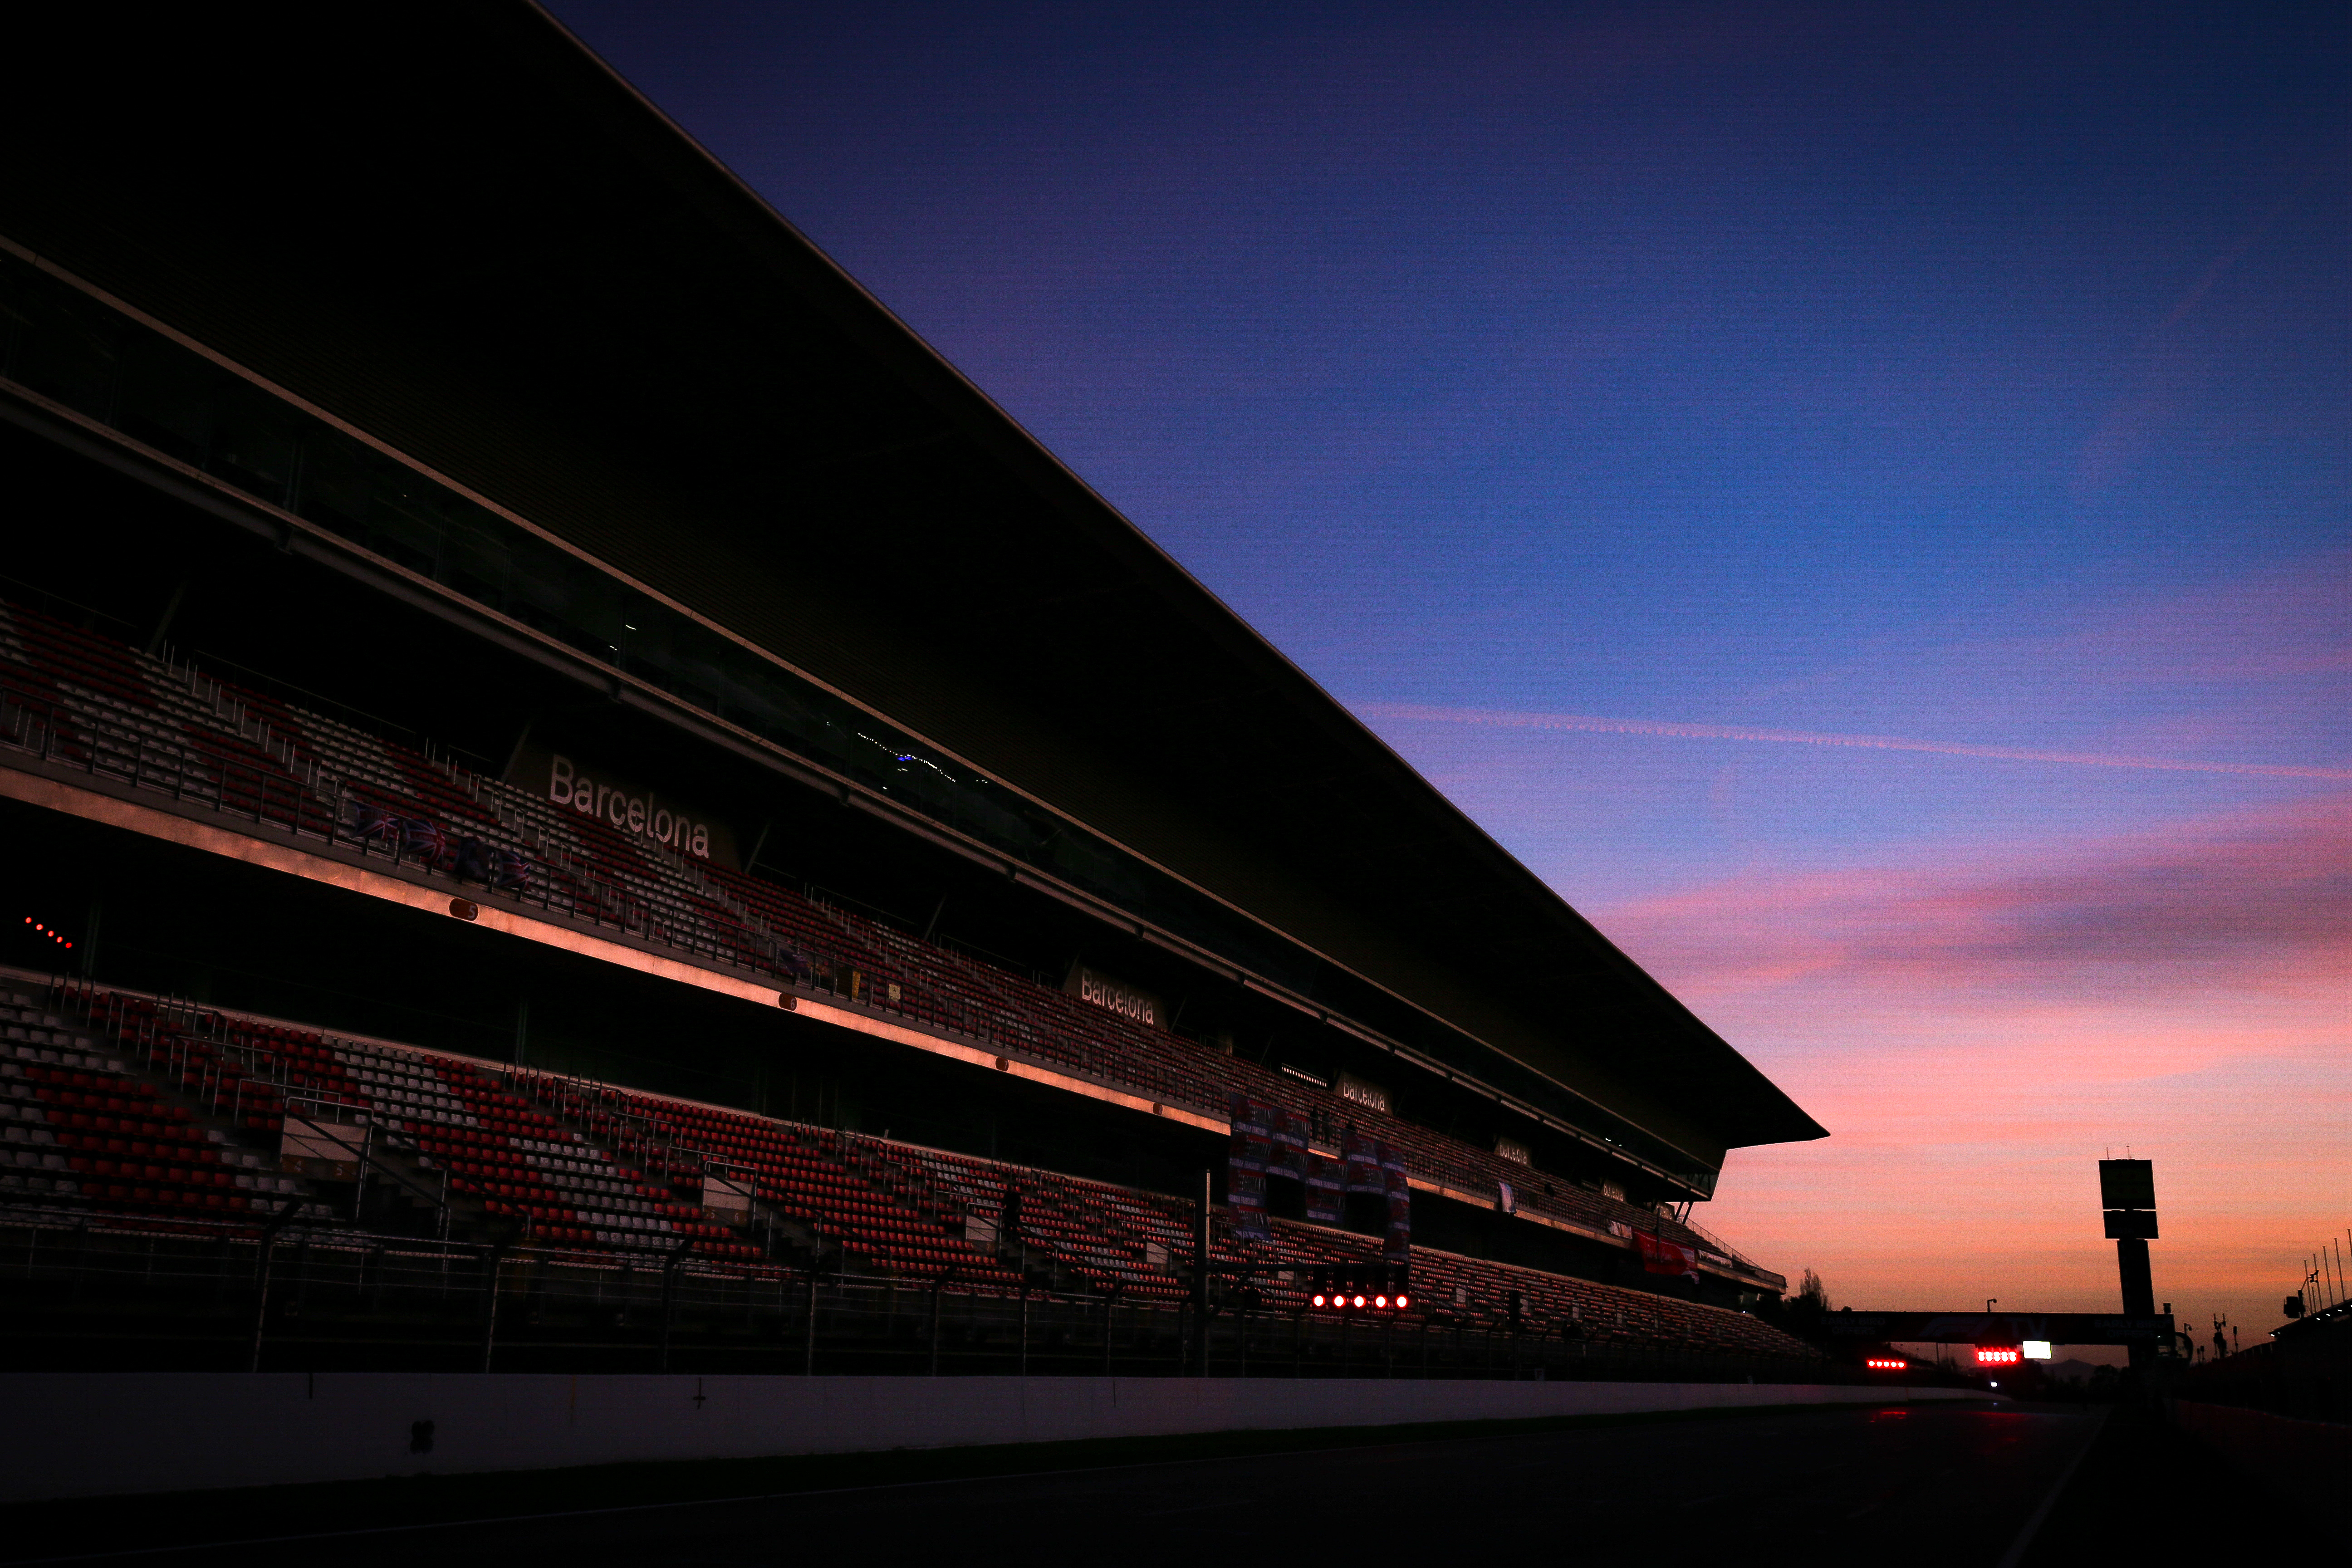 Barcelona F1 empty track and grandstand F1 testing 2020 sunset